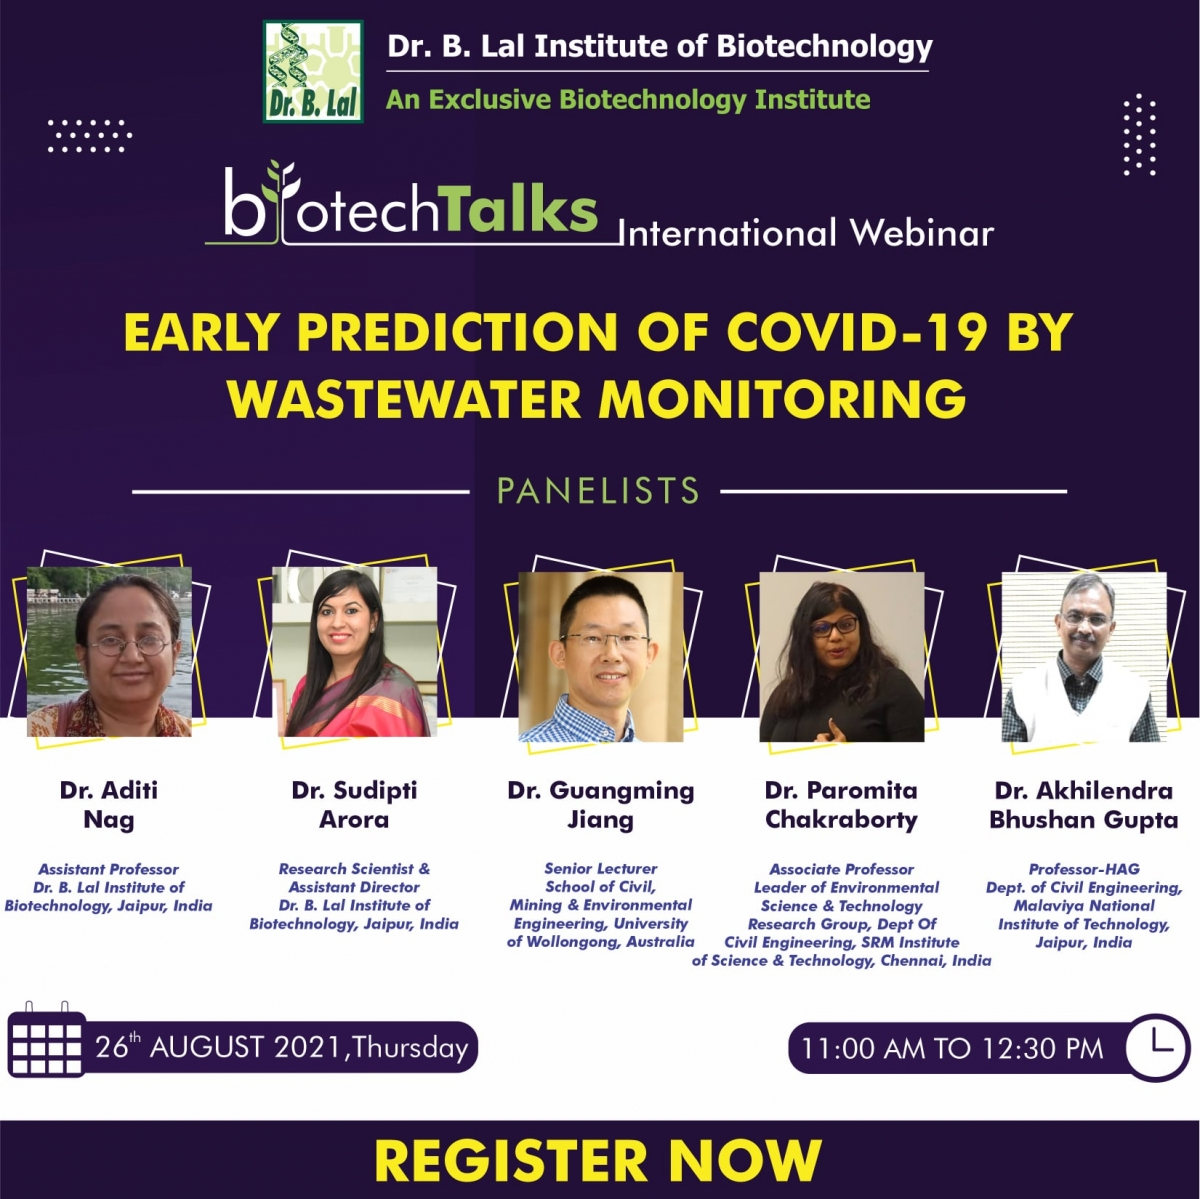 Early Prediction of Covid-19 by Wastewater Monitoring